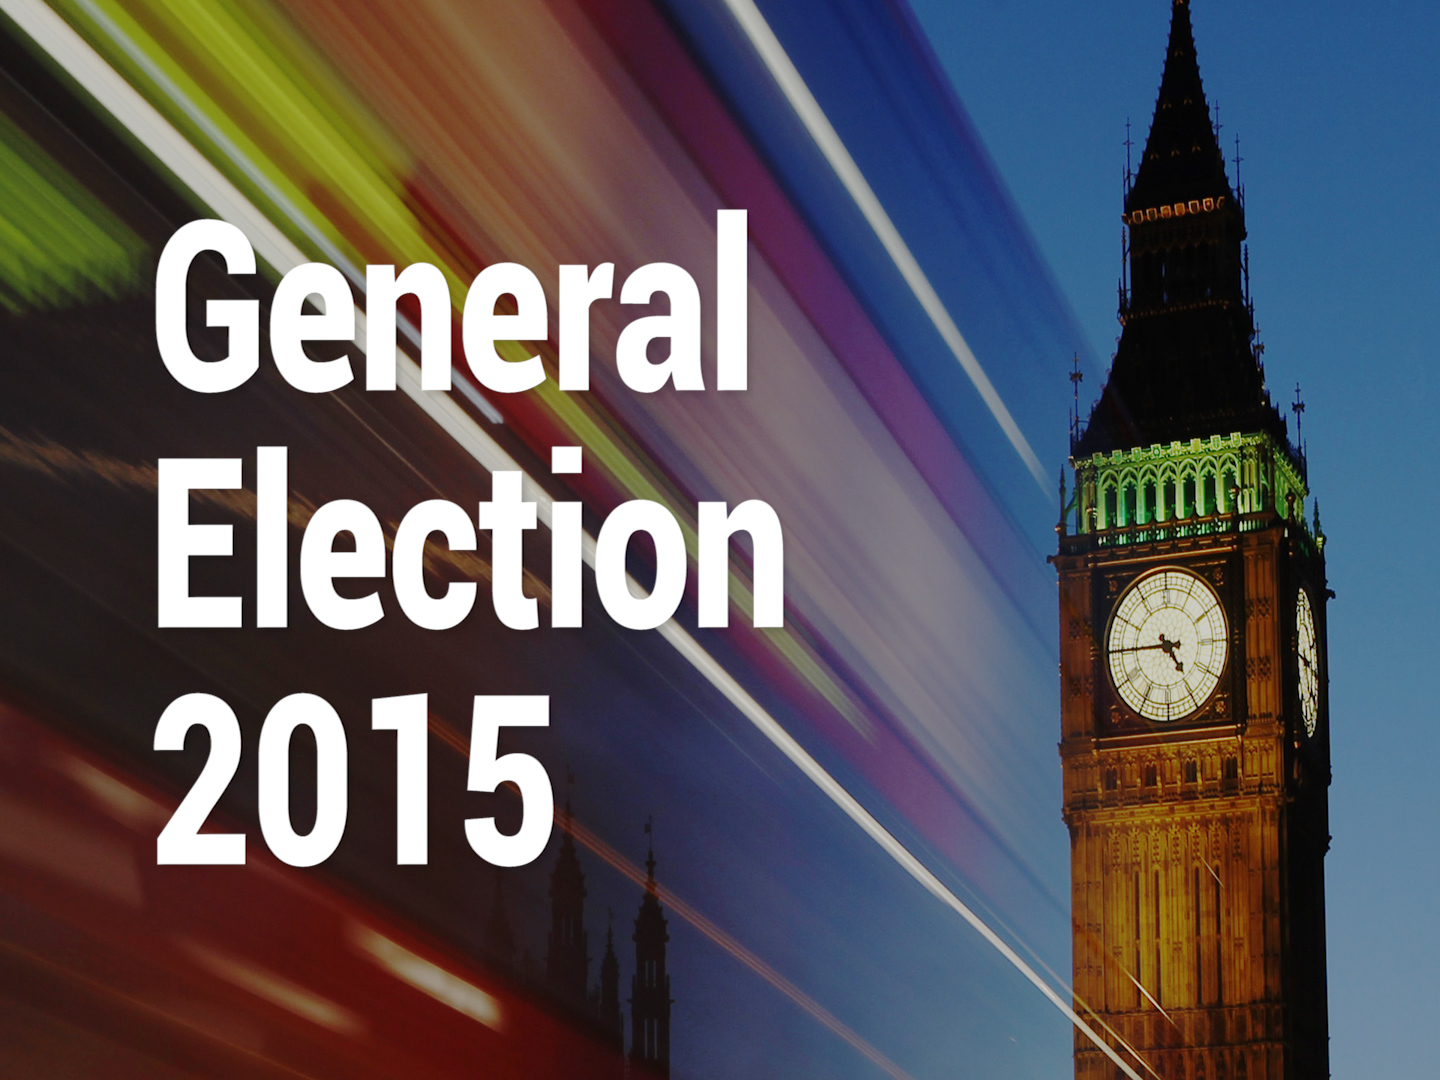 General election 2015: What you need to know with 100 days to go before polling day